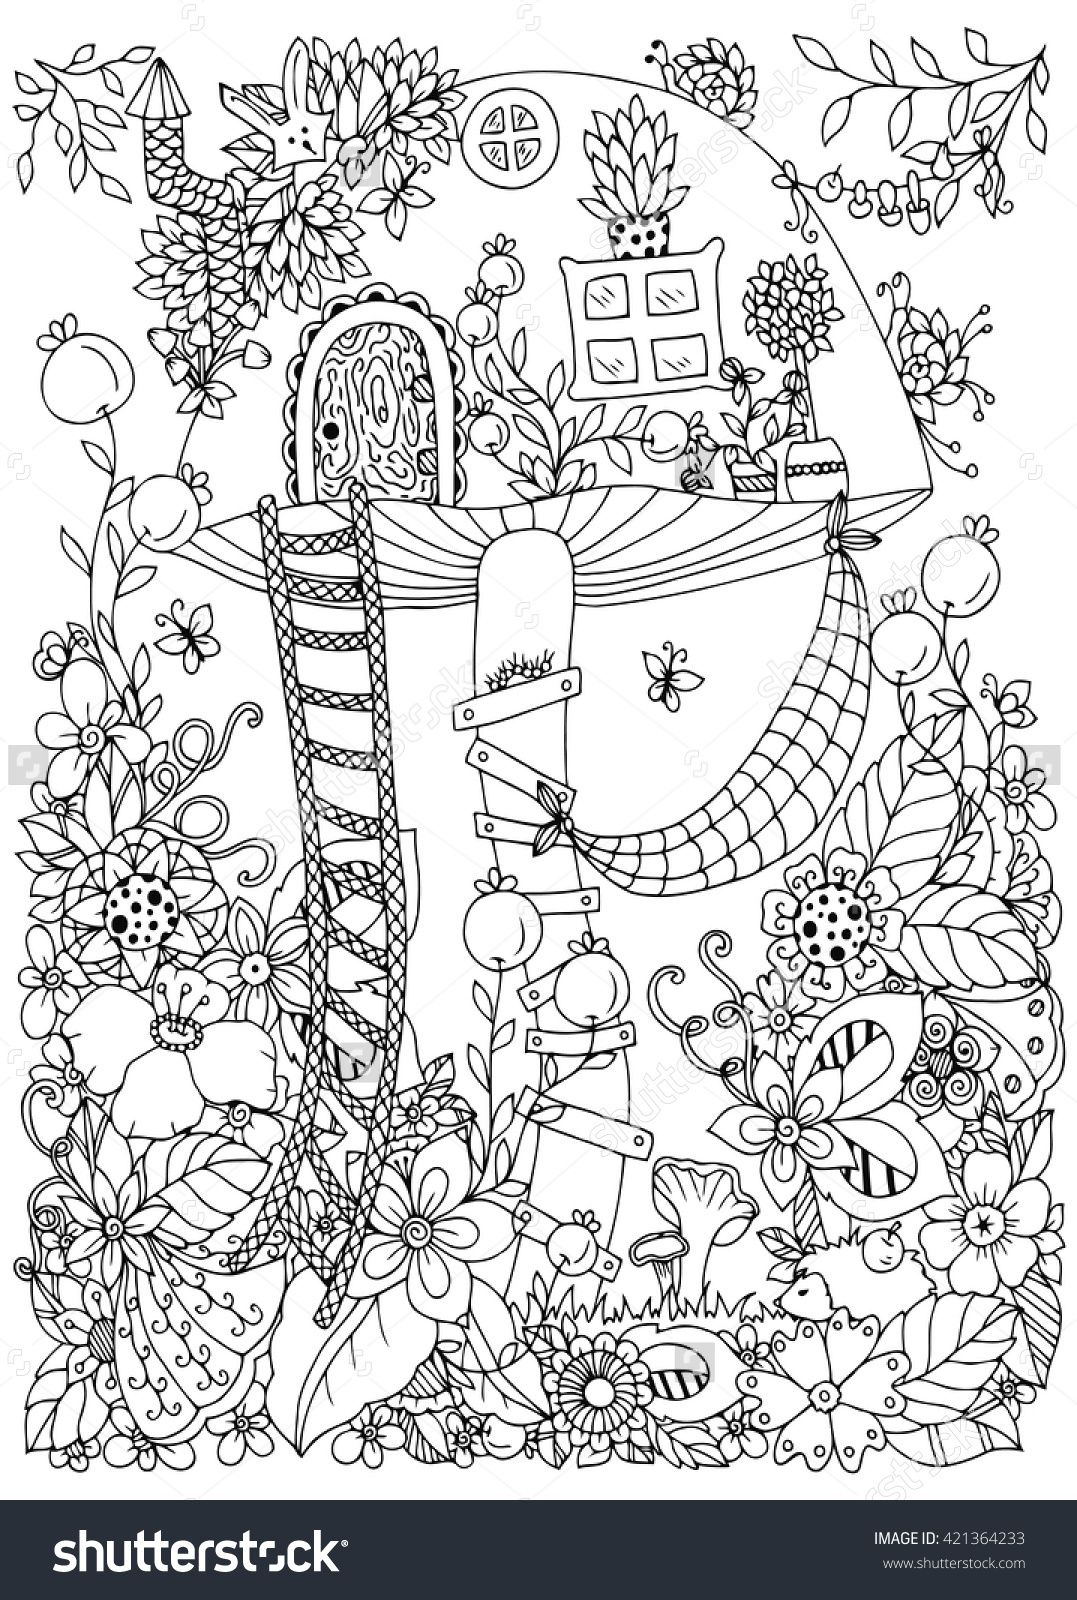 Vector Illustration Zen Tangle House Of The Fungus In Forest Doodle Flowers Coloring Book Anti Stress For Adults Page Black And White